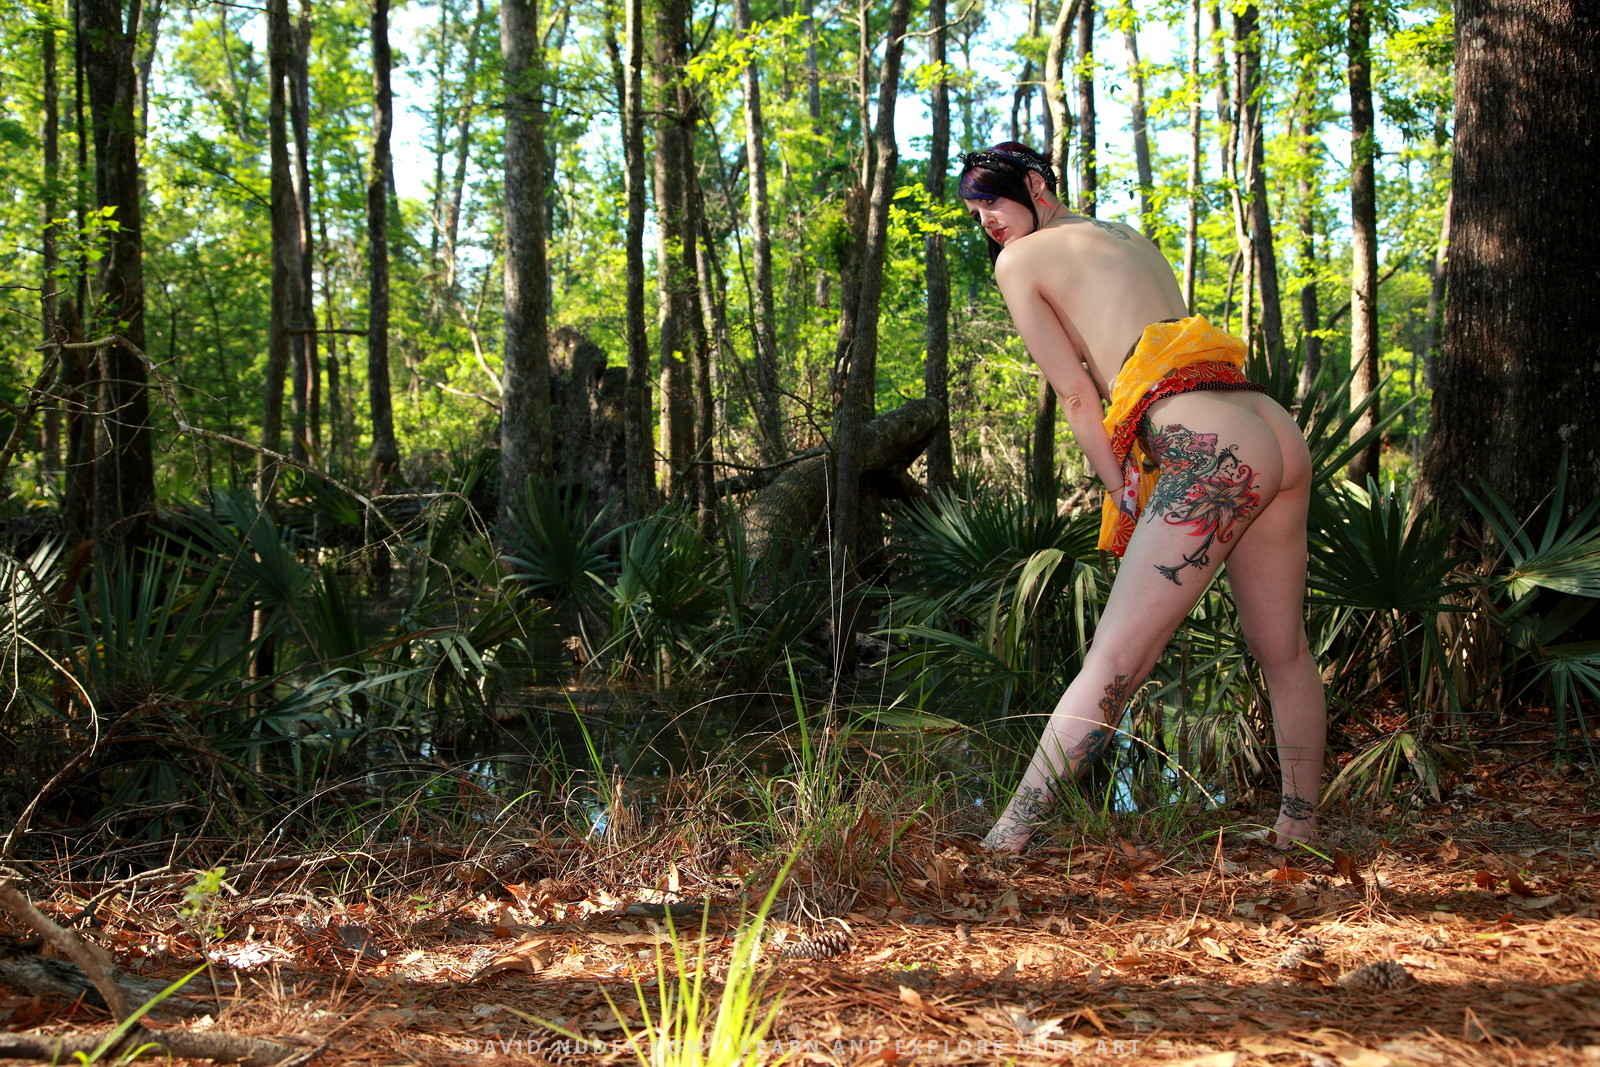 Interesting. Prompt, Louisiana swamp girls nude valuable opinion